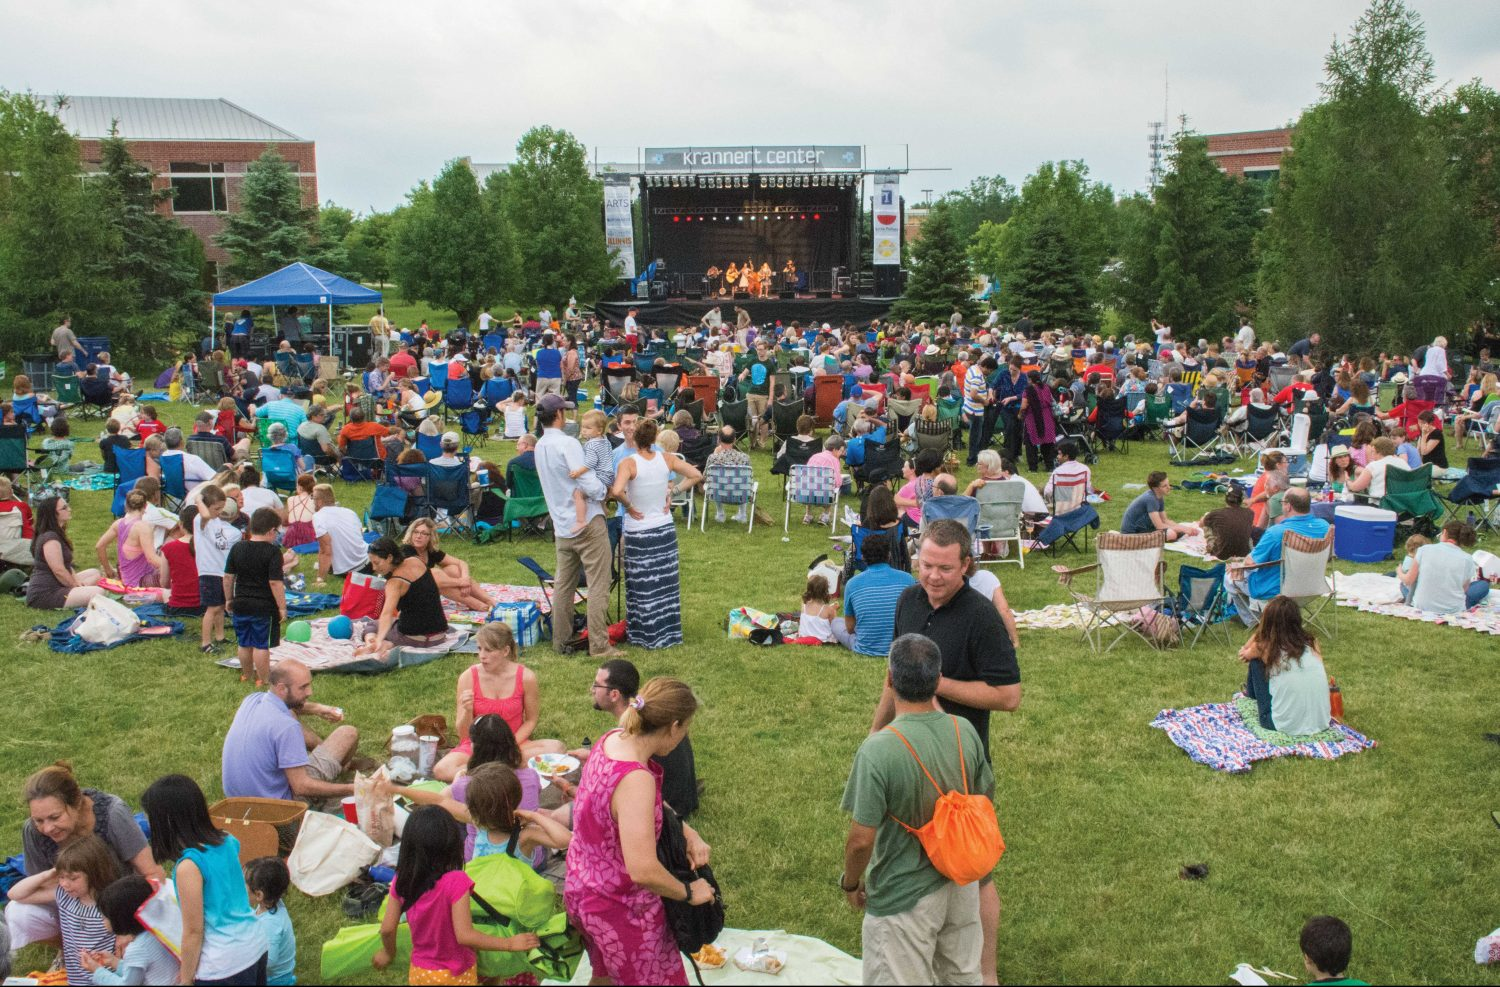 A crowd gathers to enjoy a concert at Outside at Research Park. This festival is one of many that contributes to Champaign-Urbana's vibrant culture.